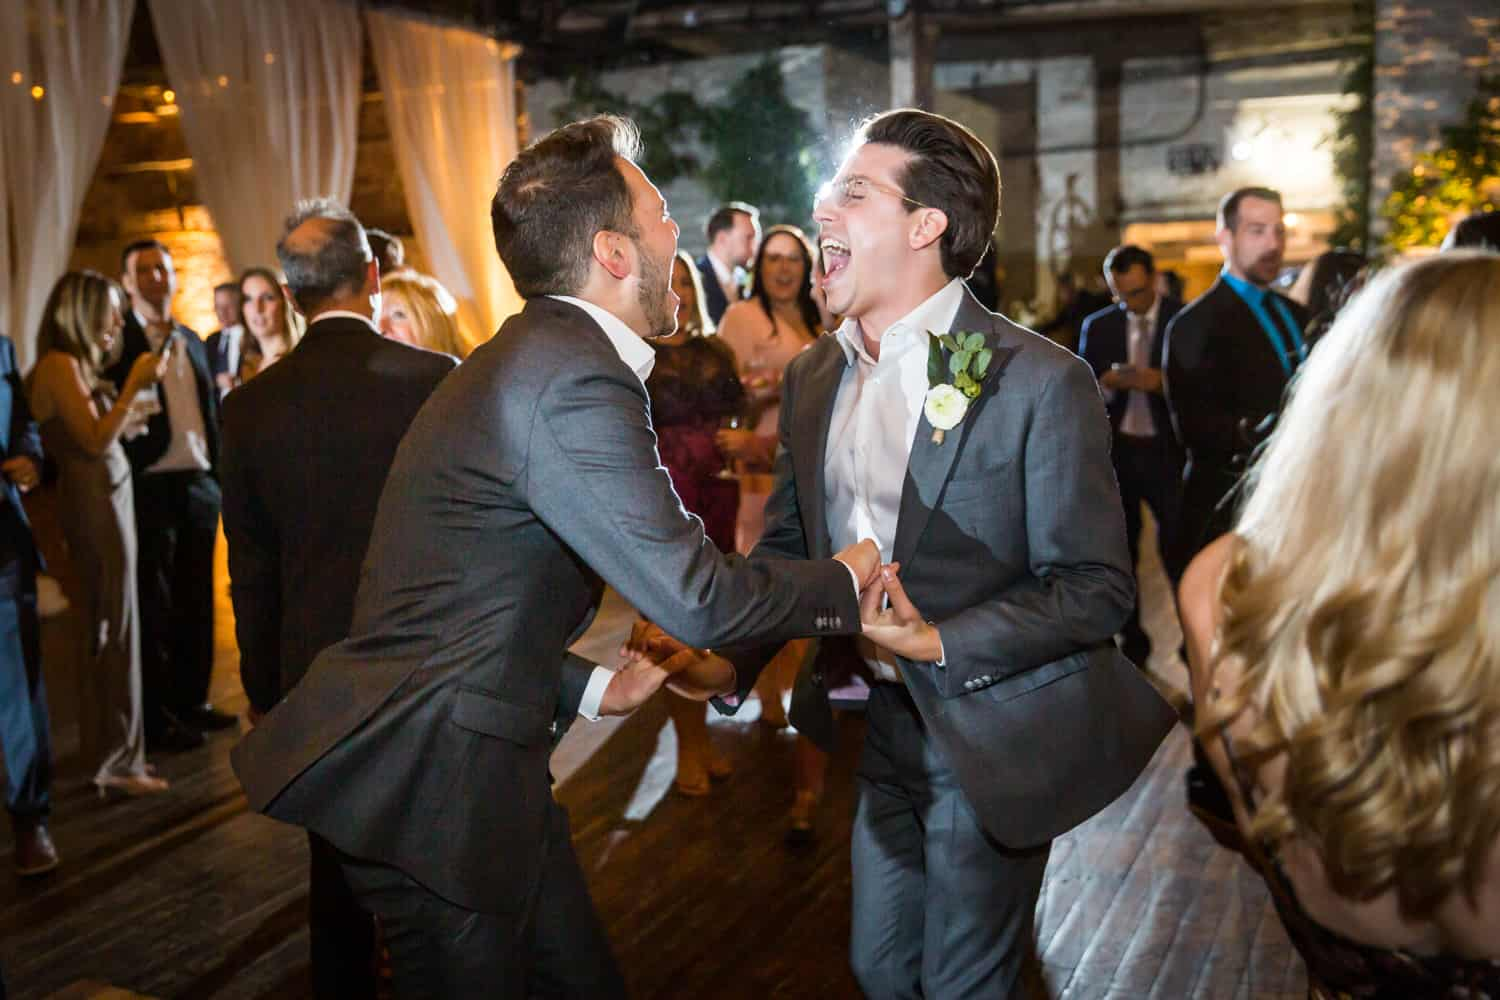 Greenpoint Loft wedding photos of two grooms dancing